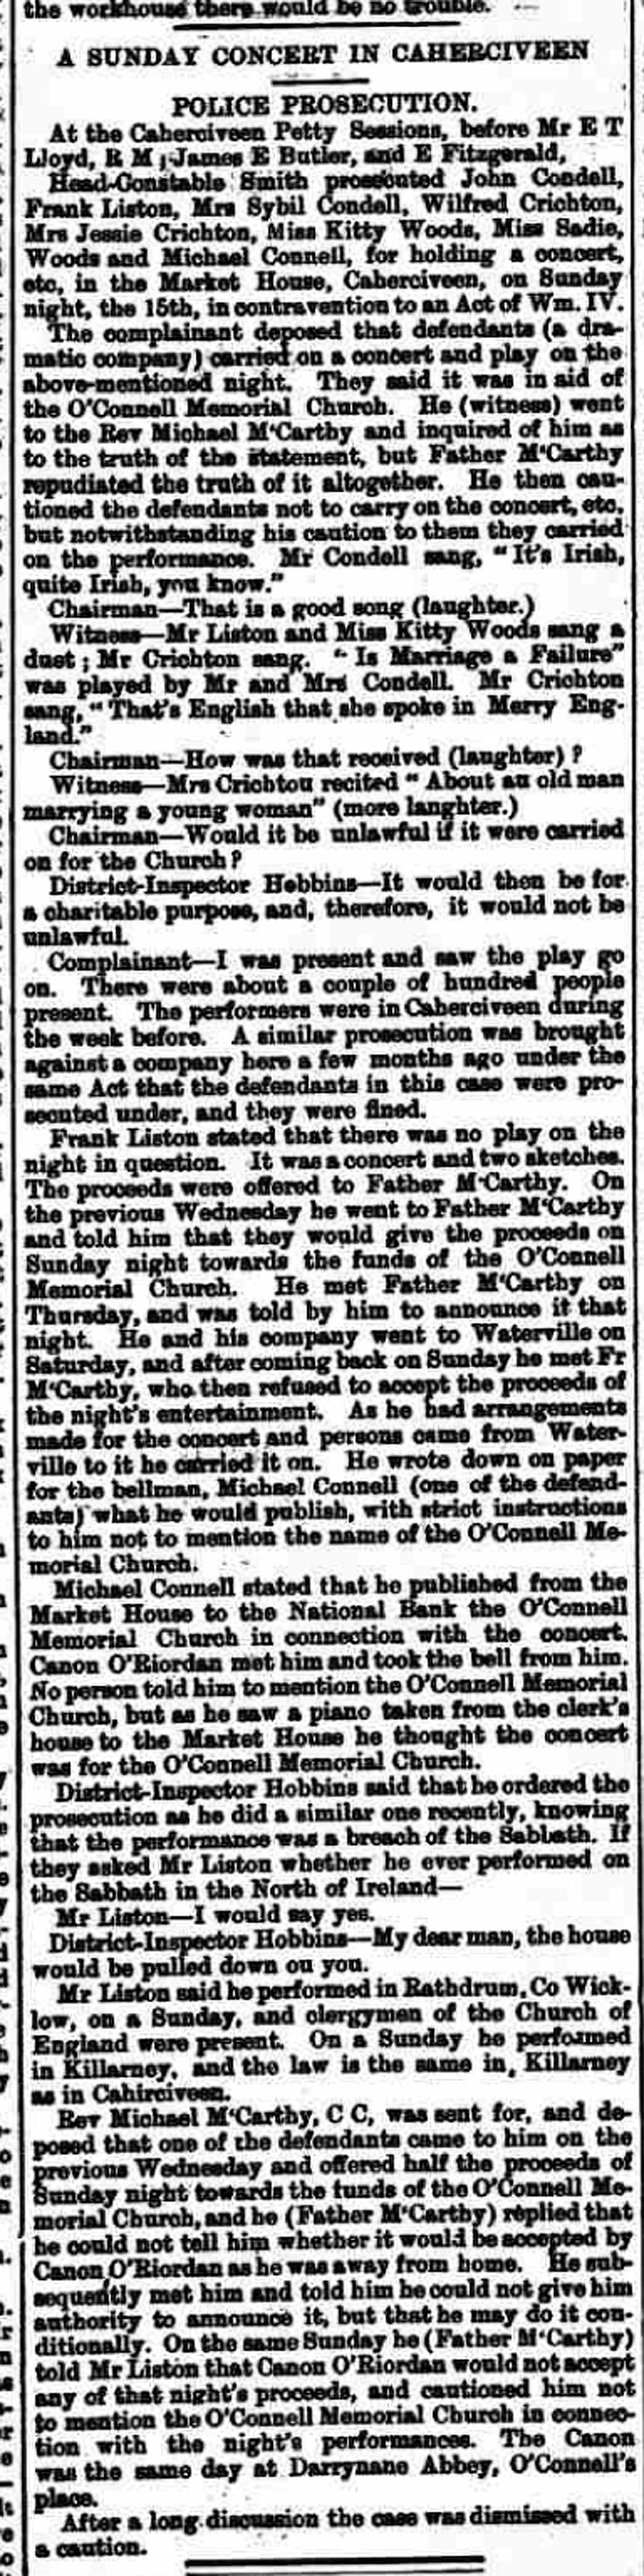 Kerry Evening Post 1st Nov. 1899 Wilfred Crichton and his colleagues in court for performing on a Sunday.